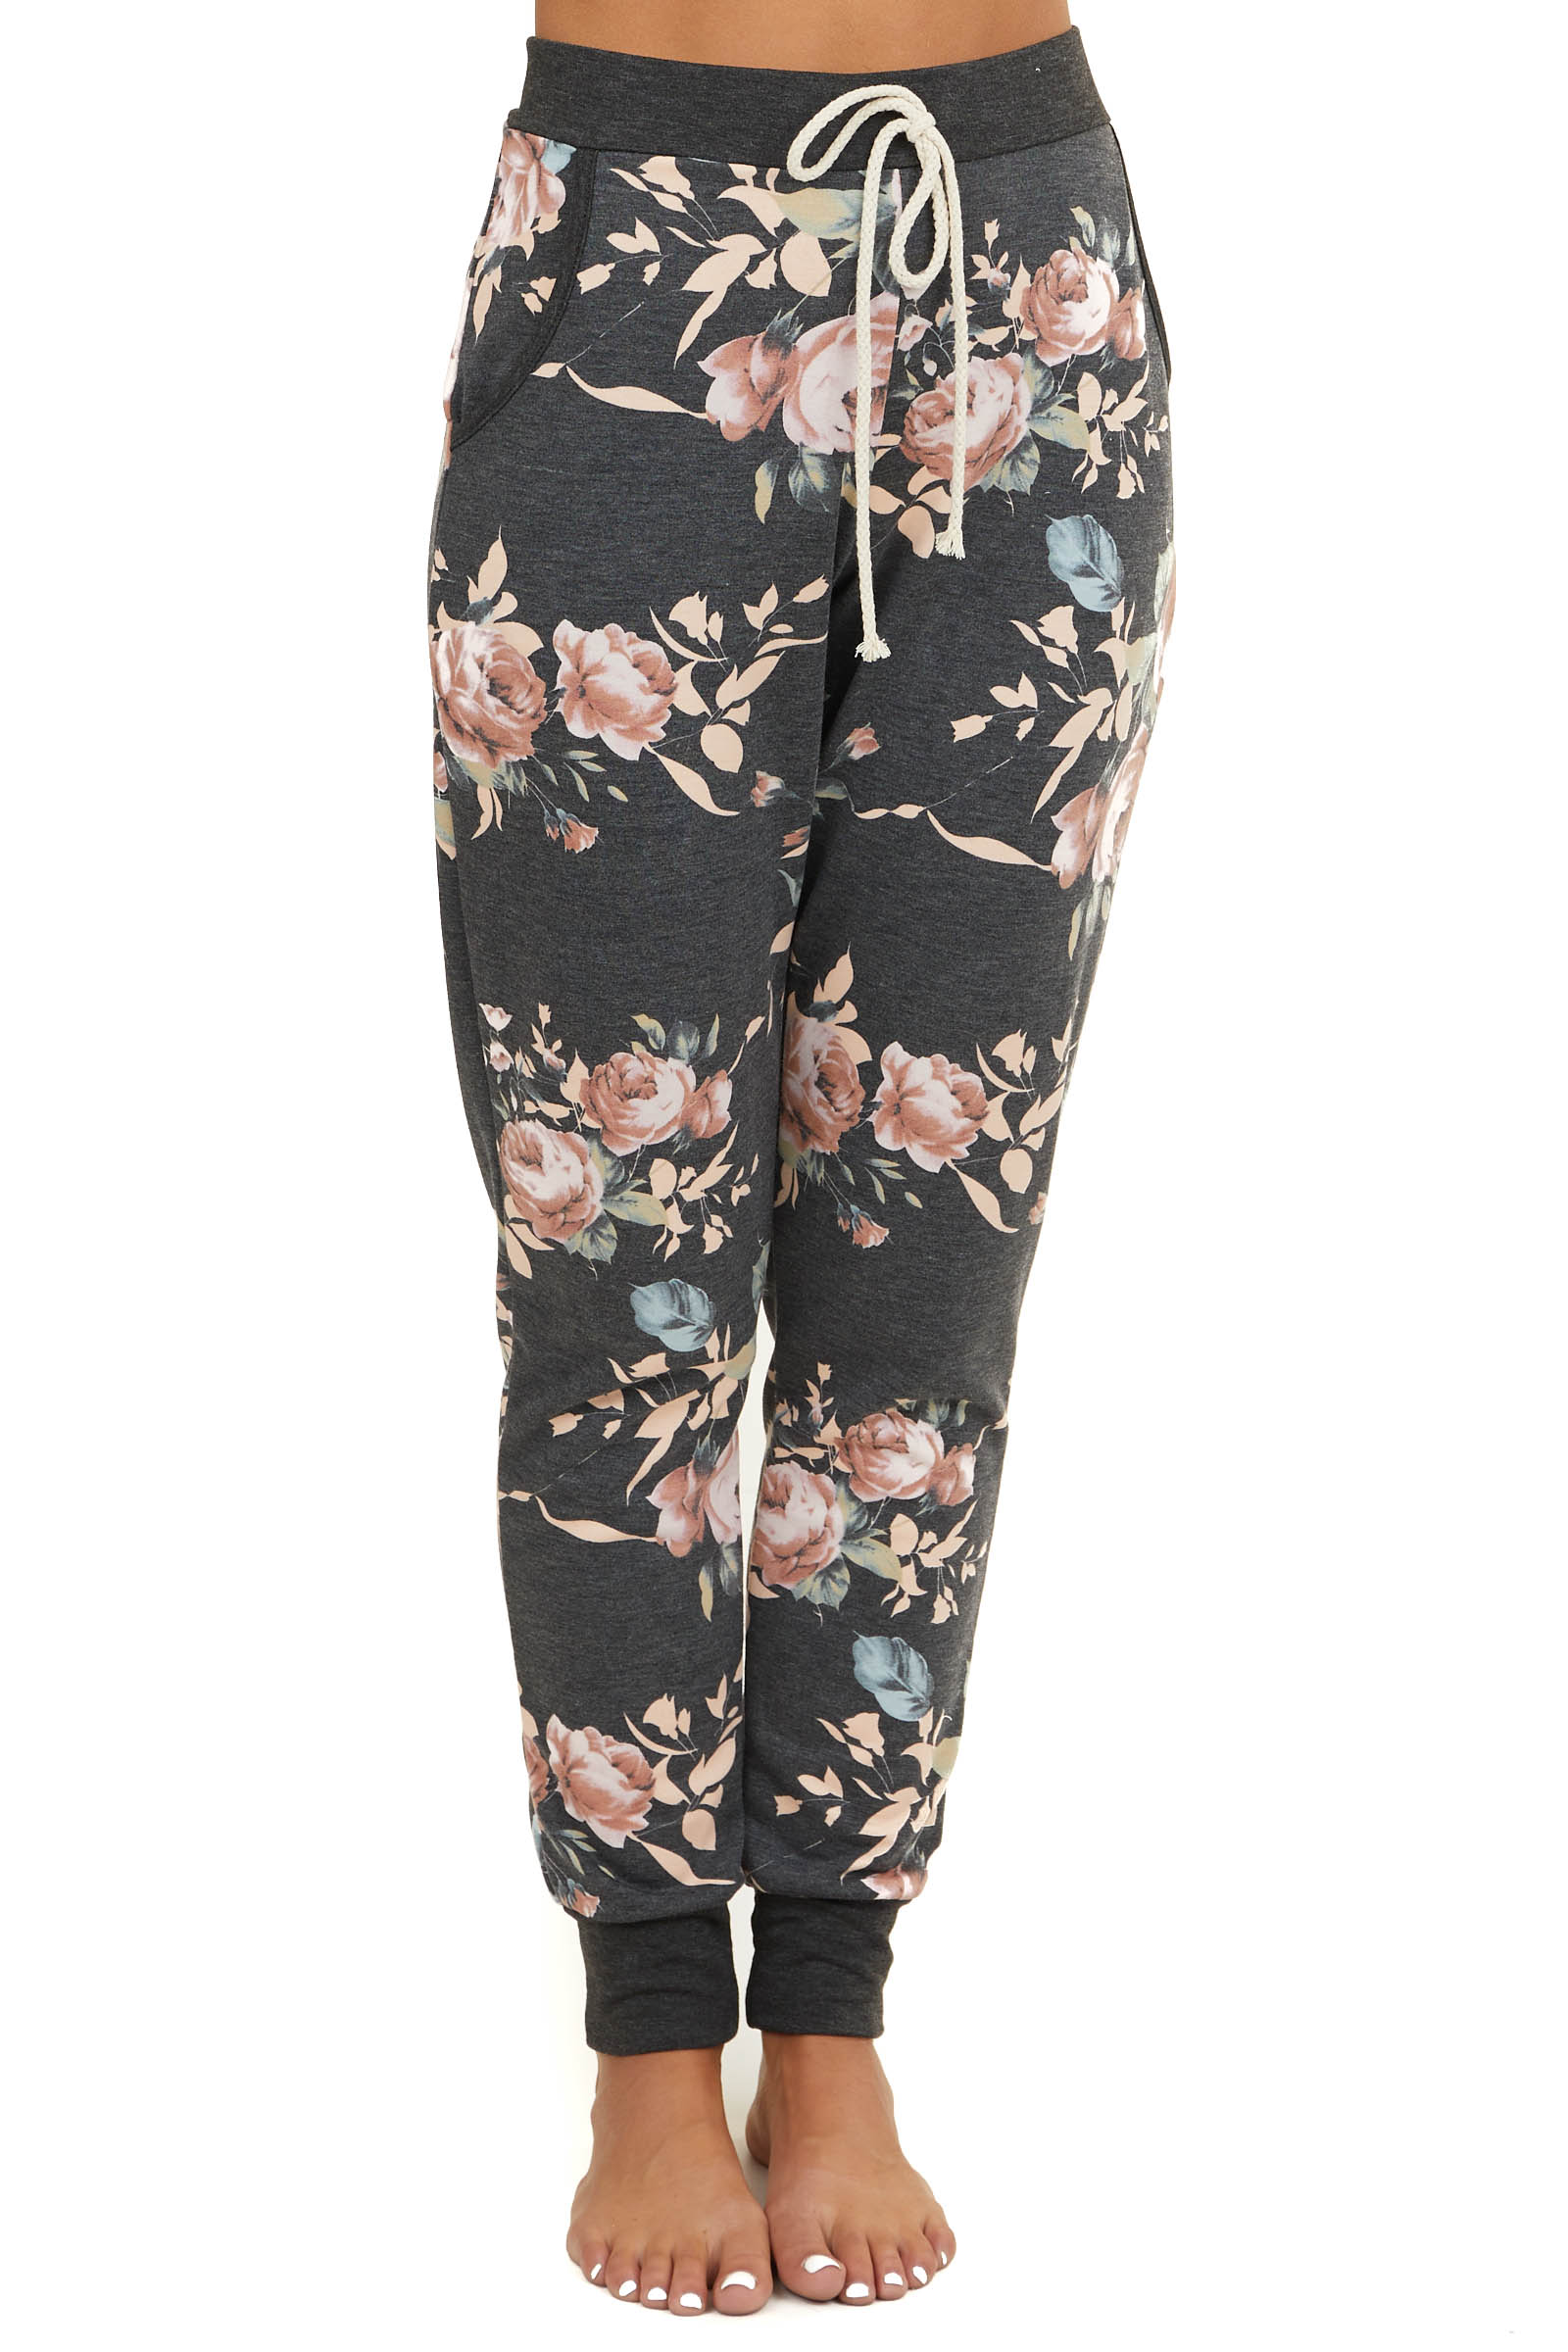 Charcoal Floral Print Jogger Sweatpants with Pocket Details